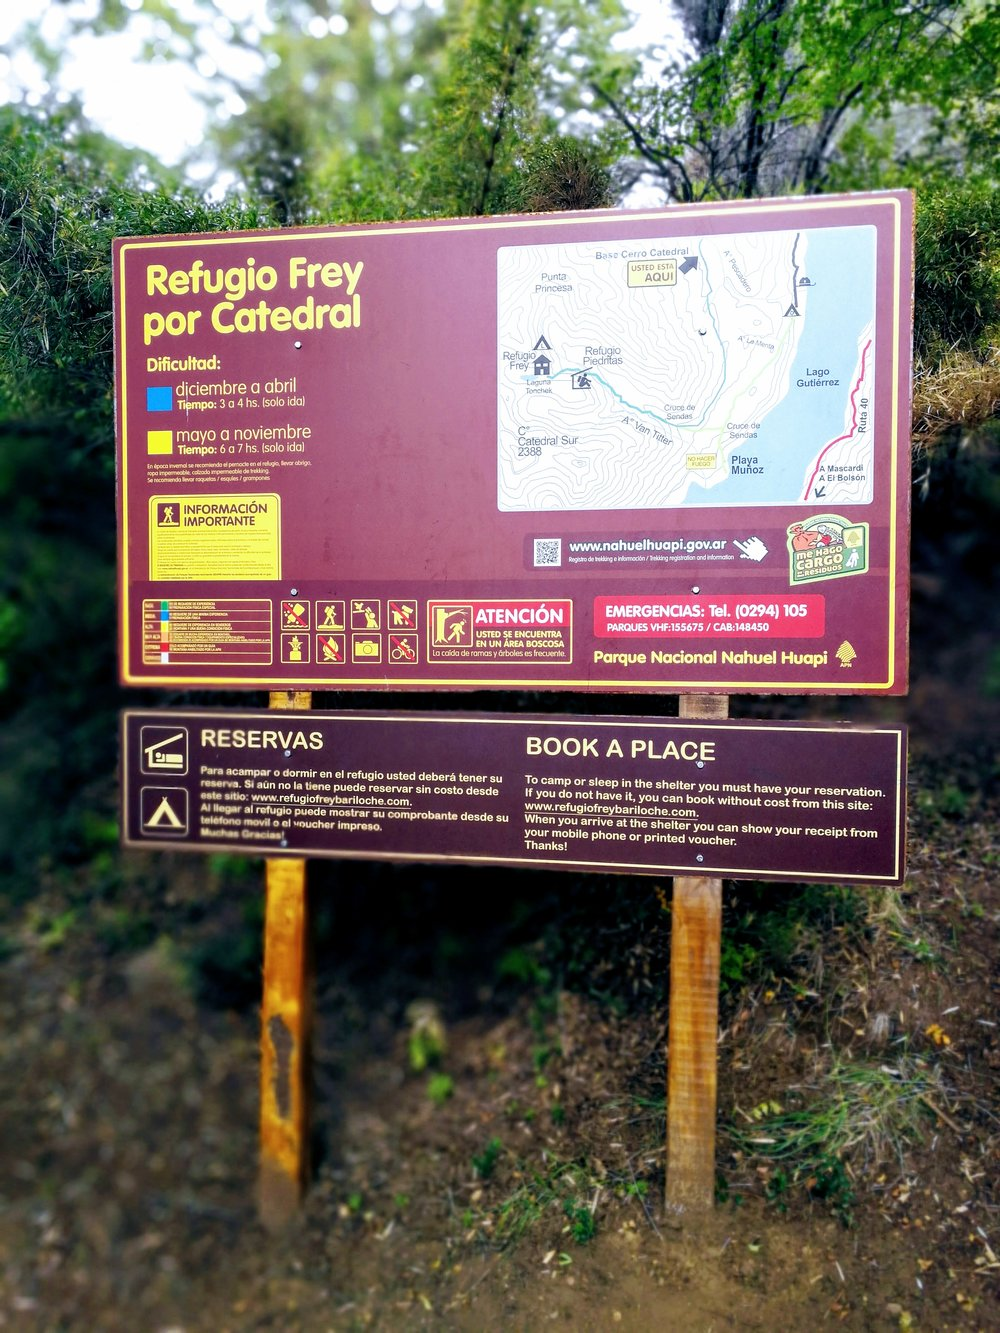 trailhead refugio frey backpacking backpacker hiking guide hike bariloche camping map argentina difficulty about